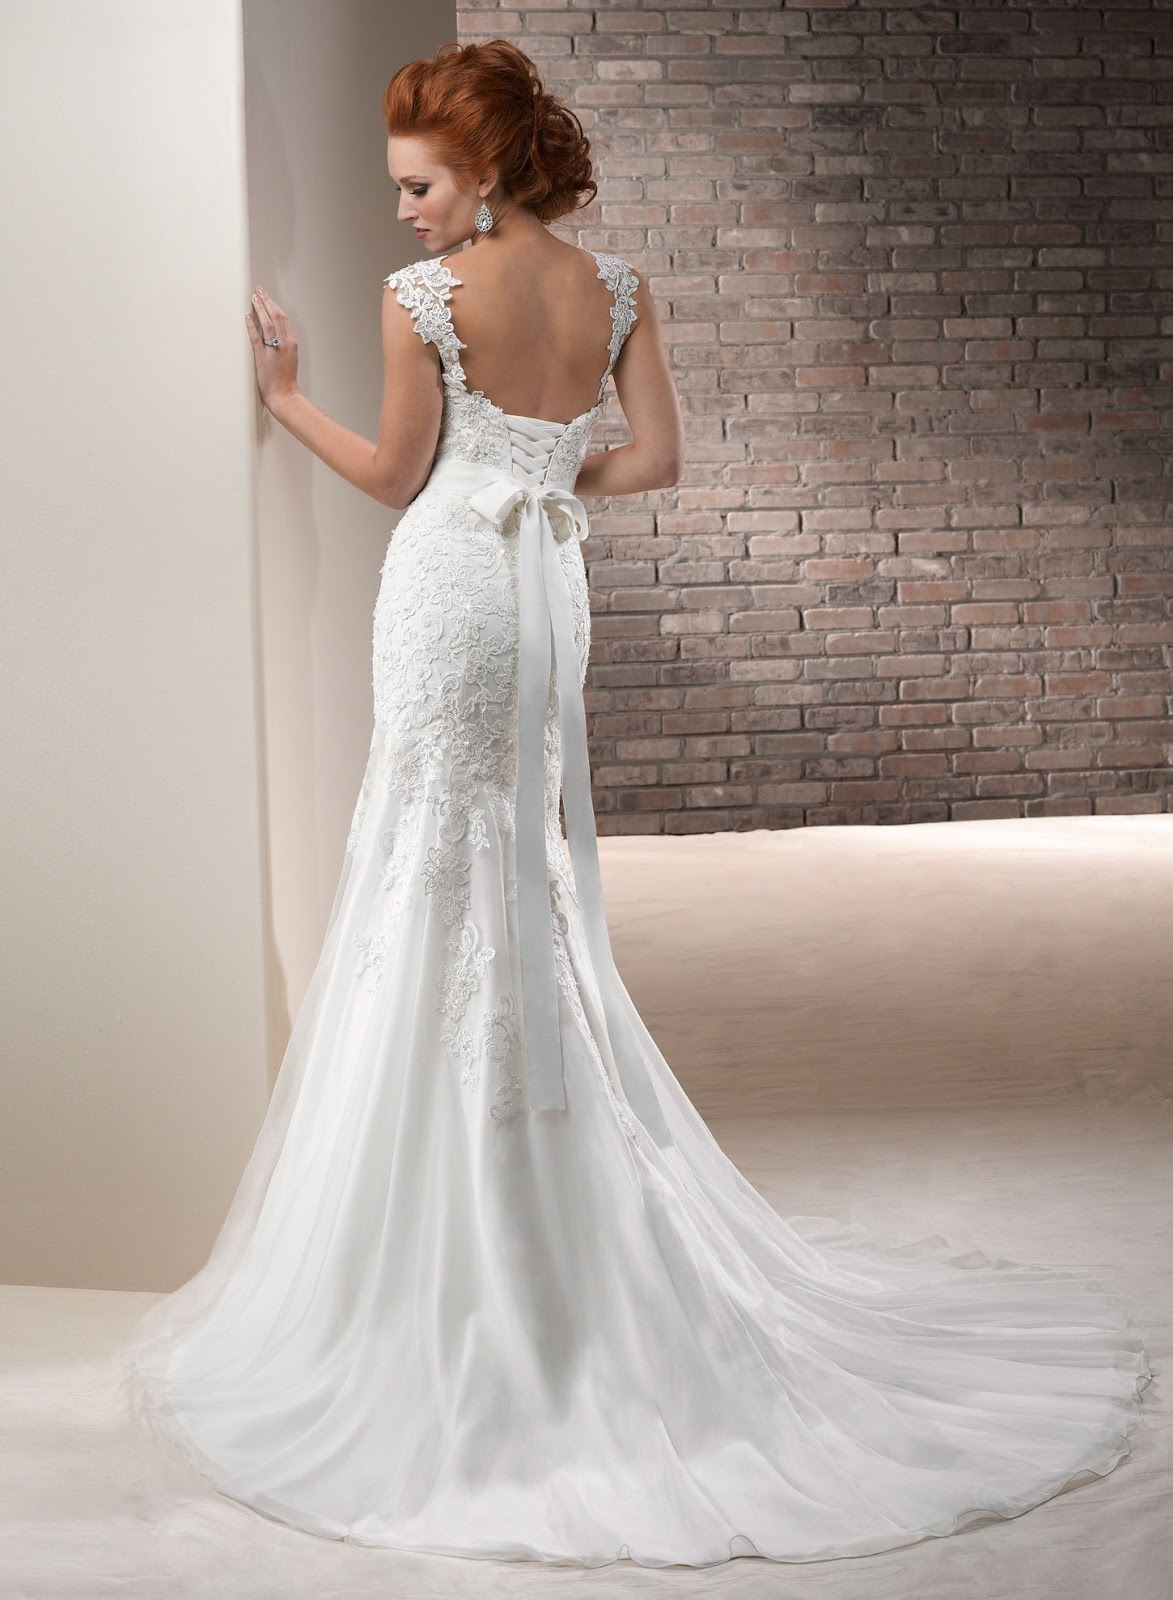 Maggie Sottero Spring 2013 Divina Bridal Wedding Dresses